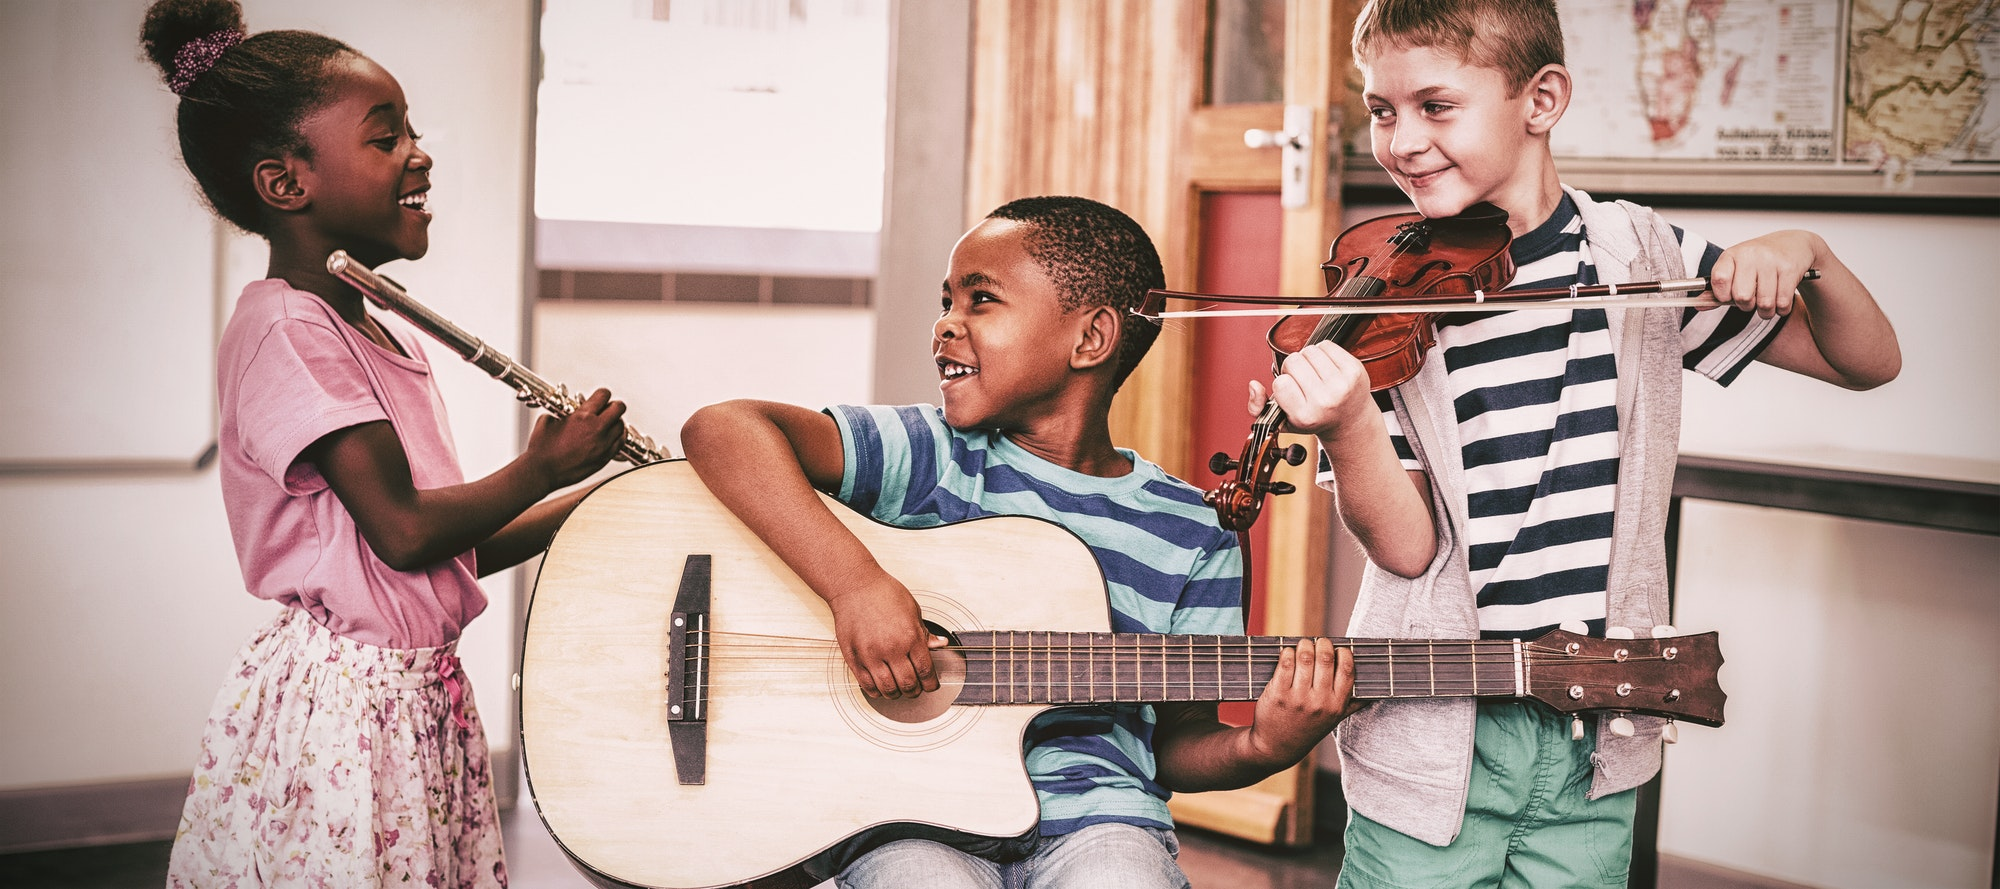 Children playing musical instruments in classroom